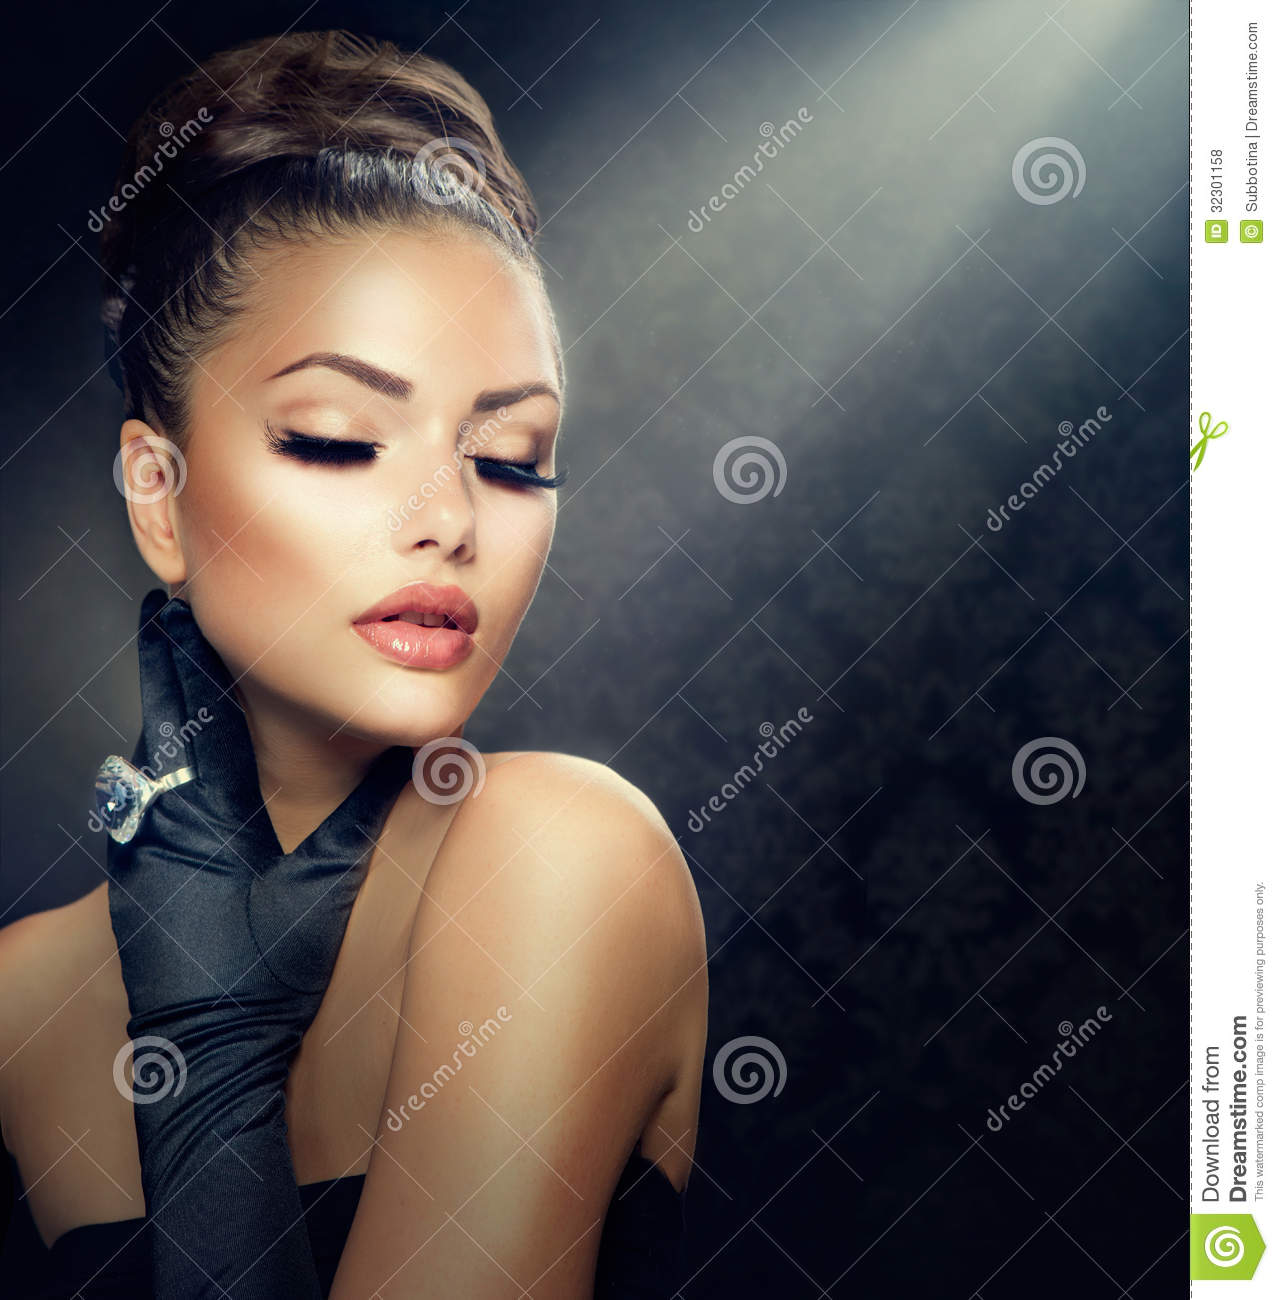 Vintage Style Girl Stock Photo Image Of Up Beauty Facial 32301158